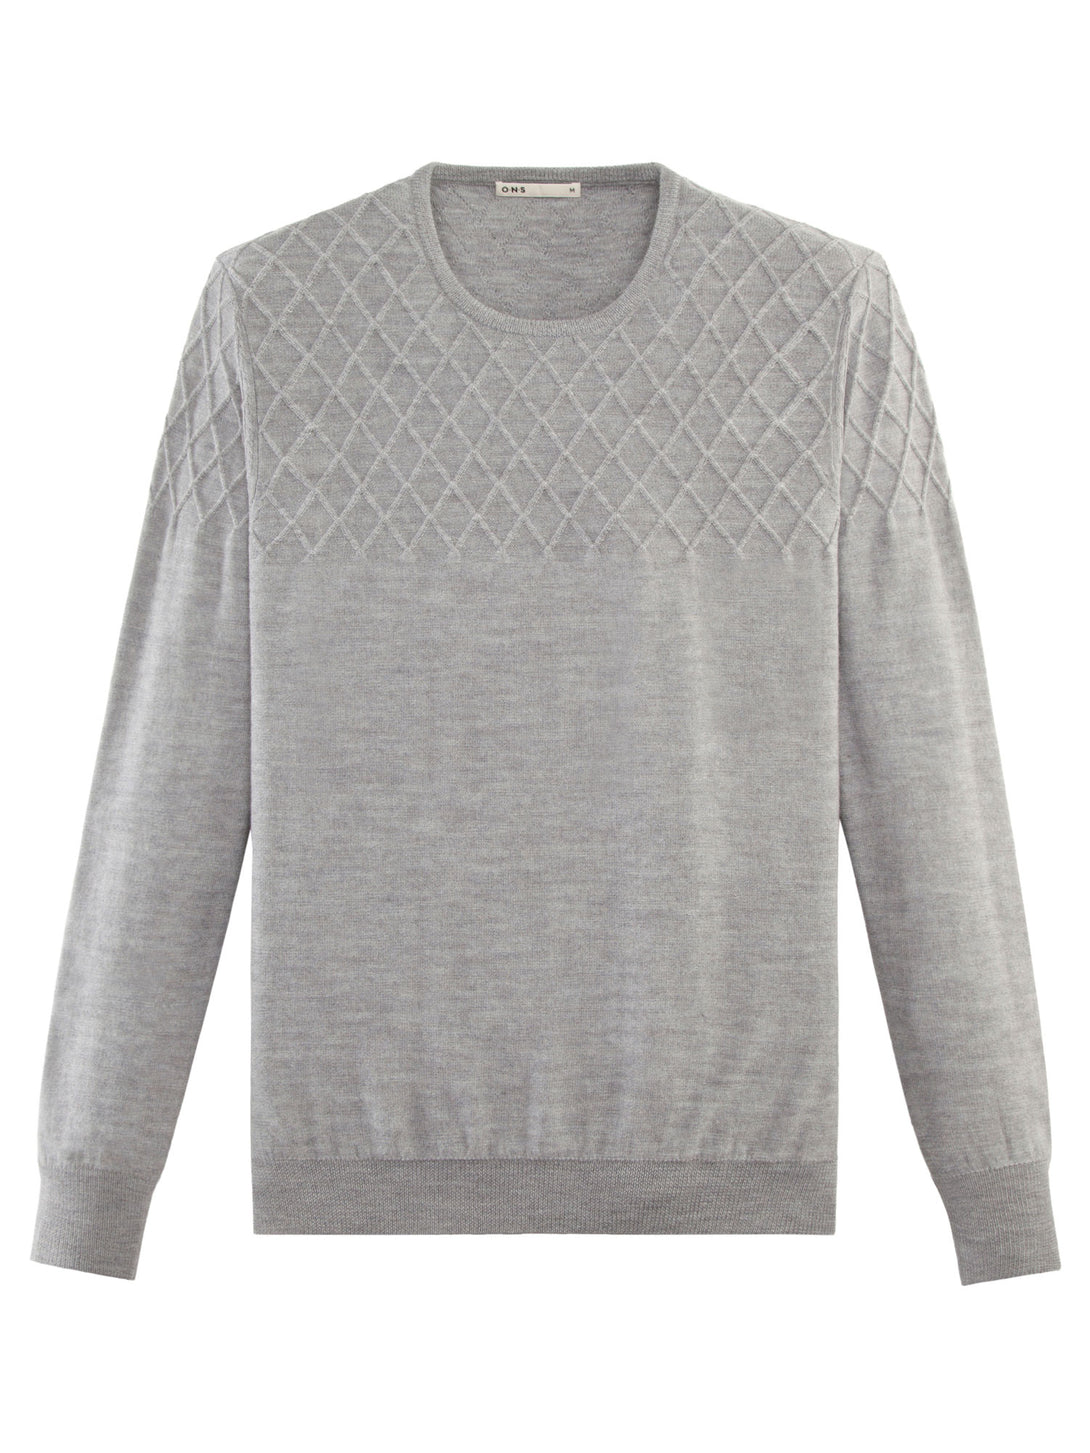 GREY DIAMOND TEXTURED CREW NECK